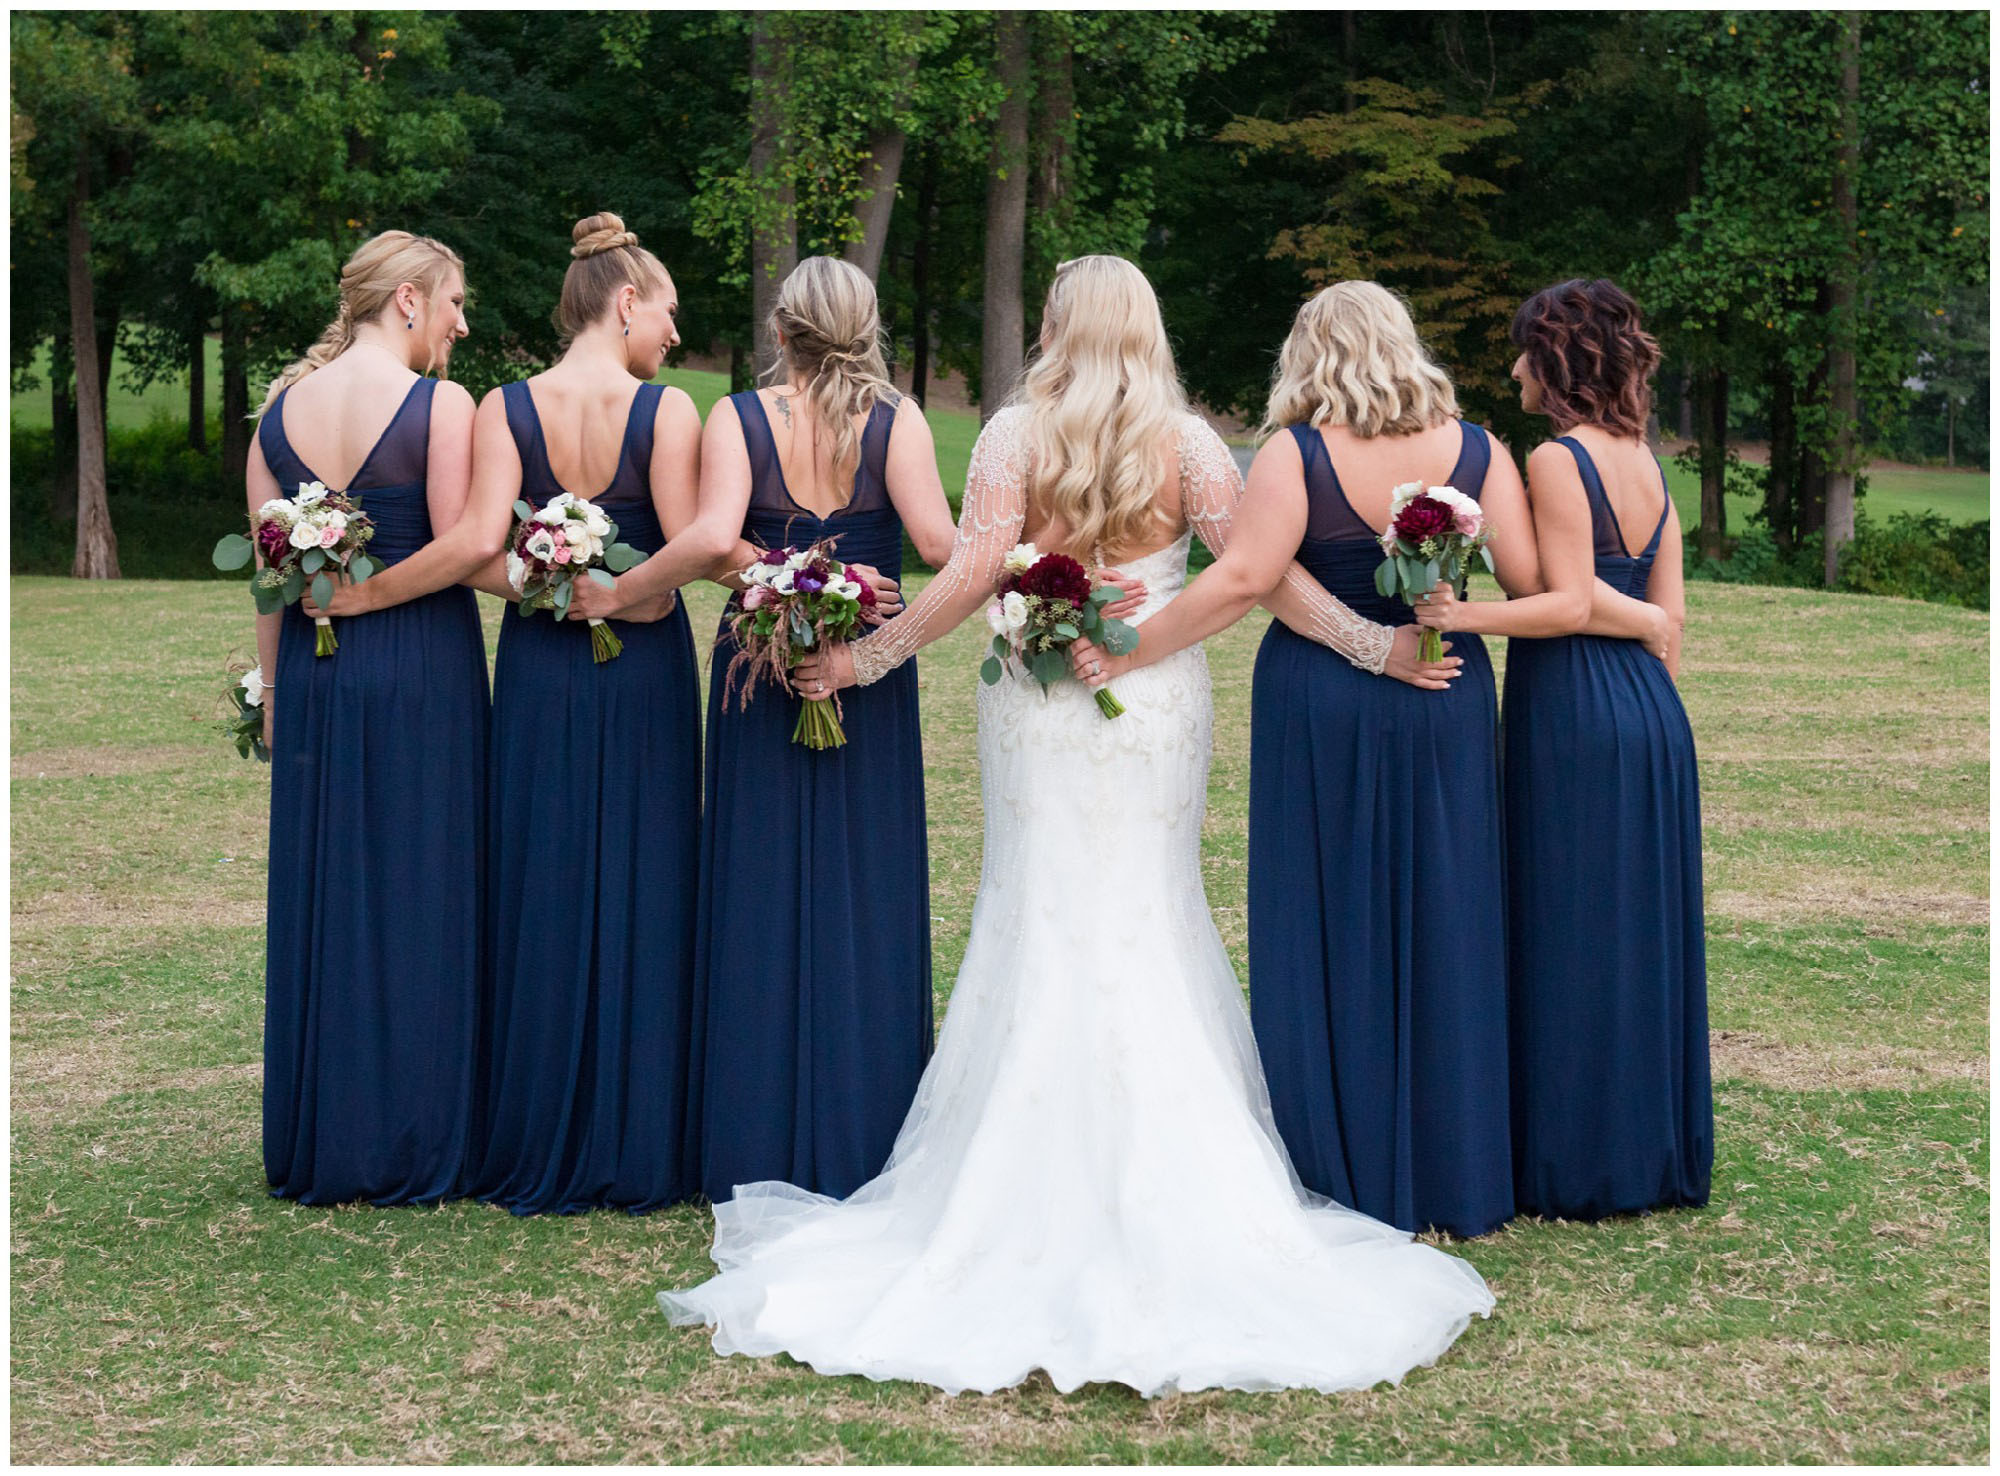 bridesmaids flowers at golf course wedding